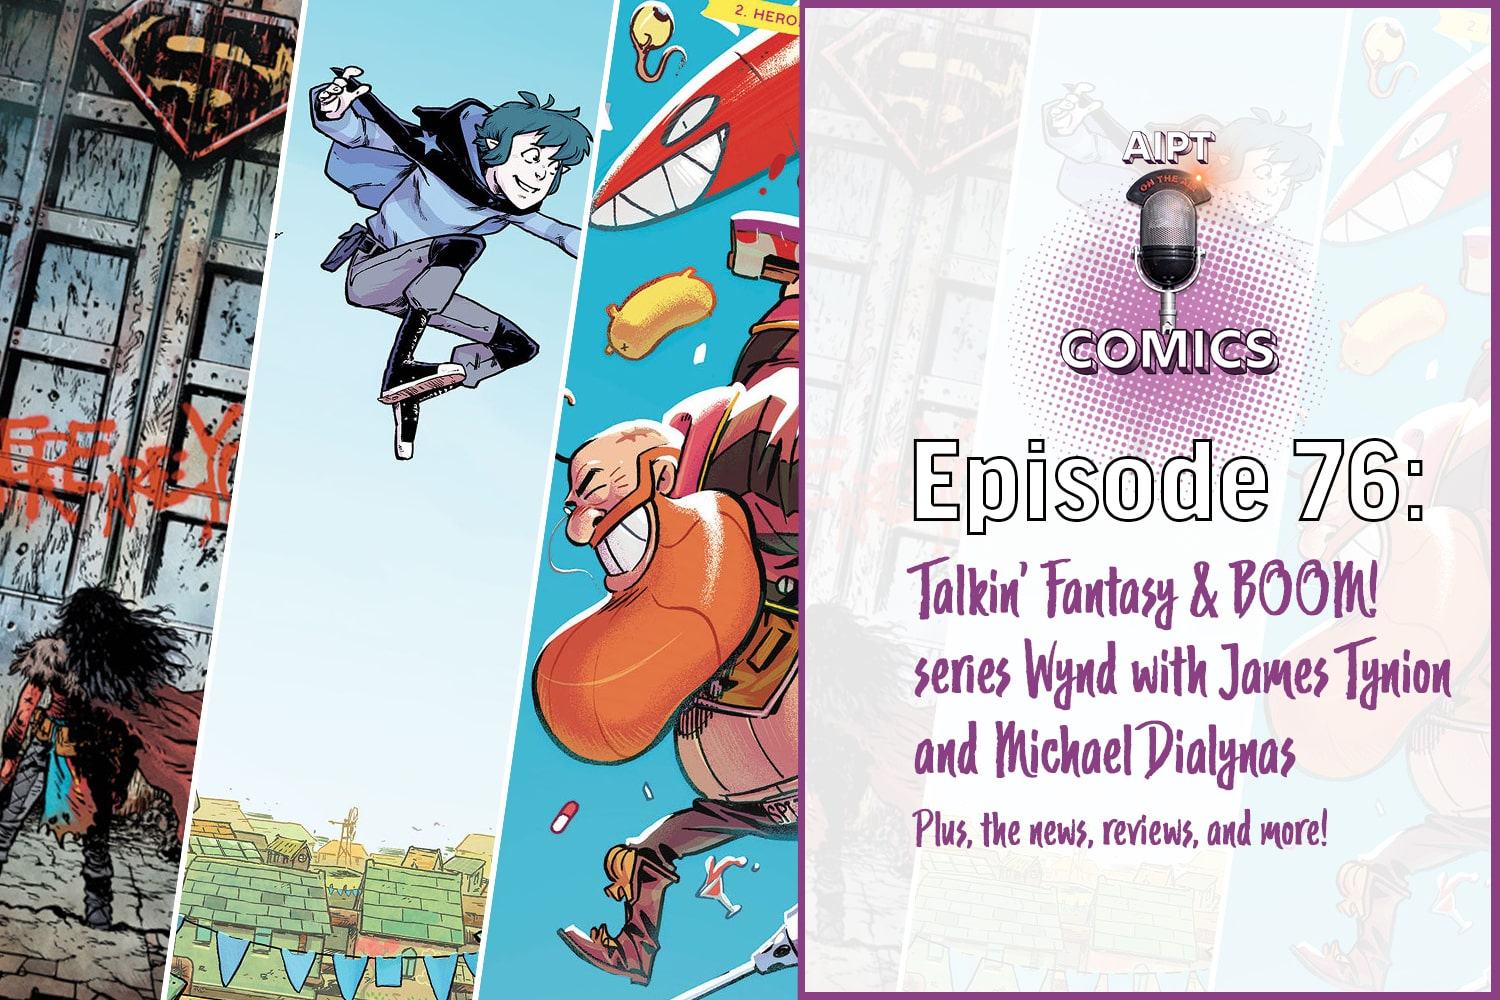 The comics podcast interviews Tynion and Dialynas about their new series, plus the news, reviews and more.